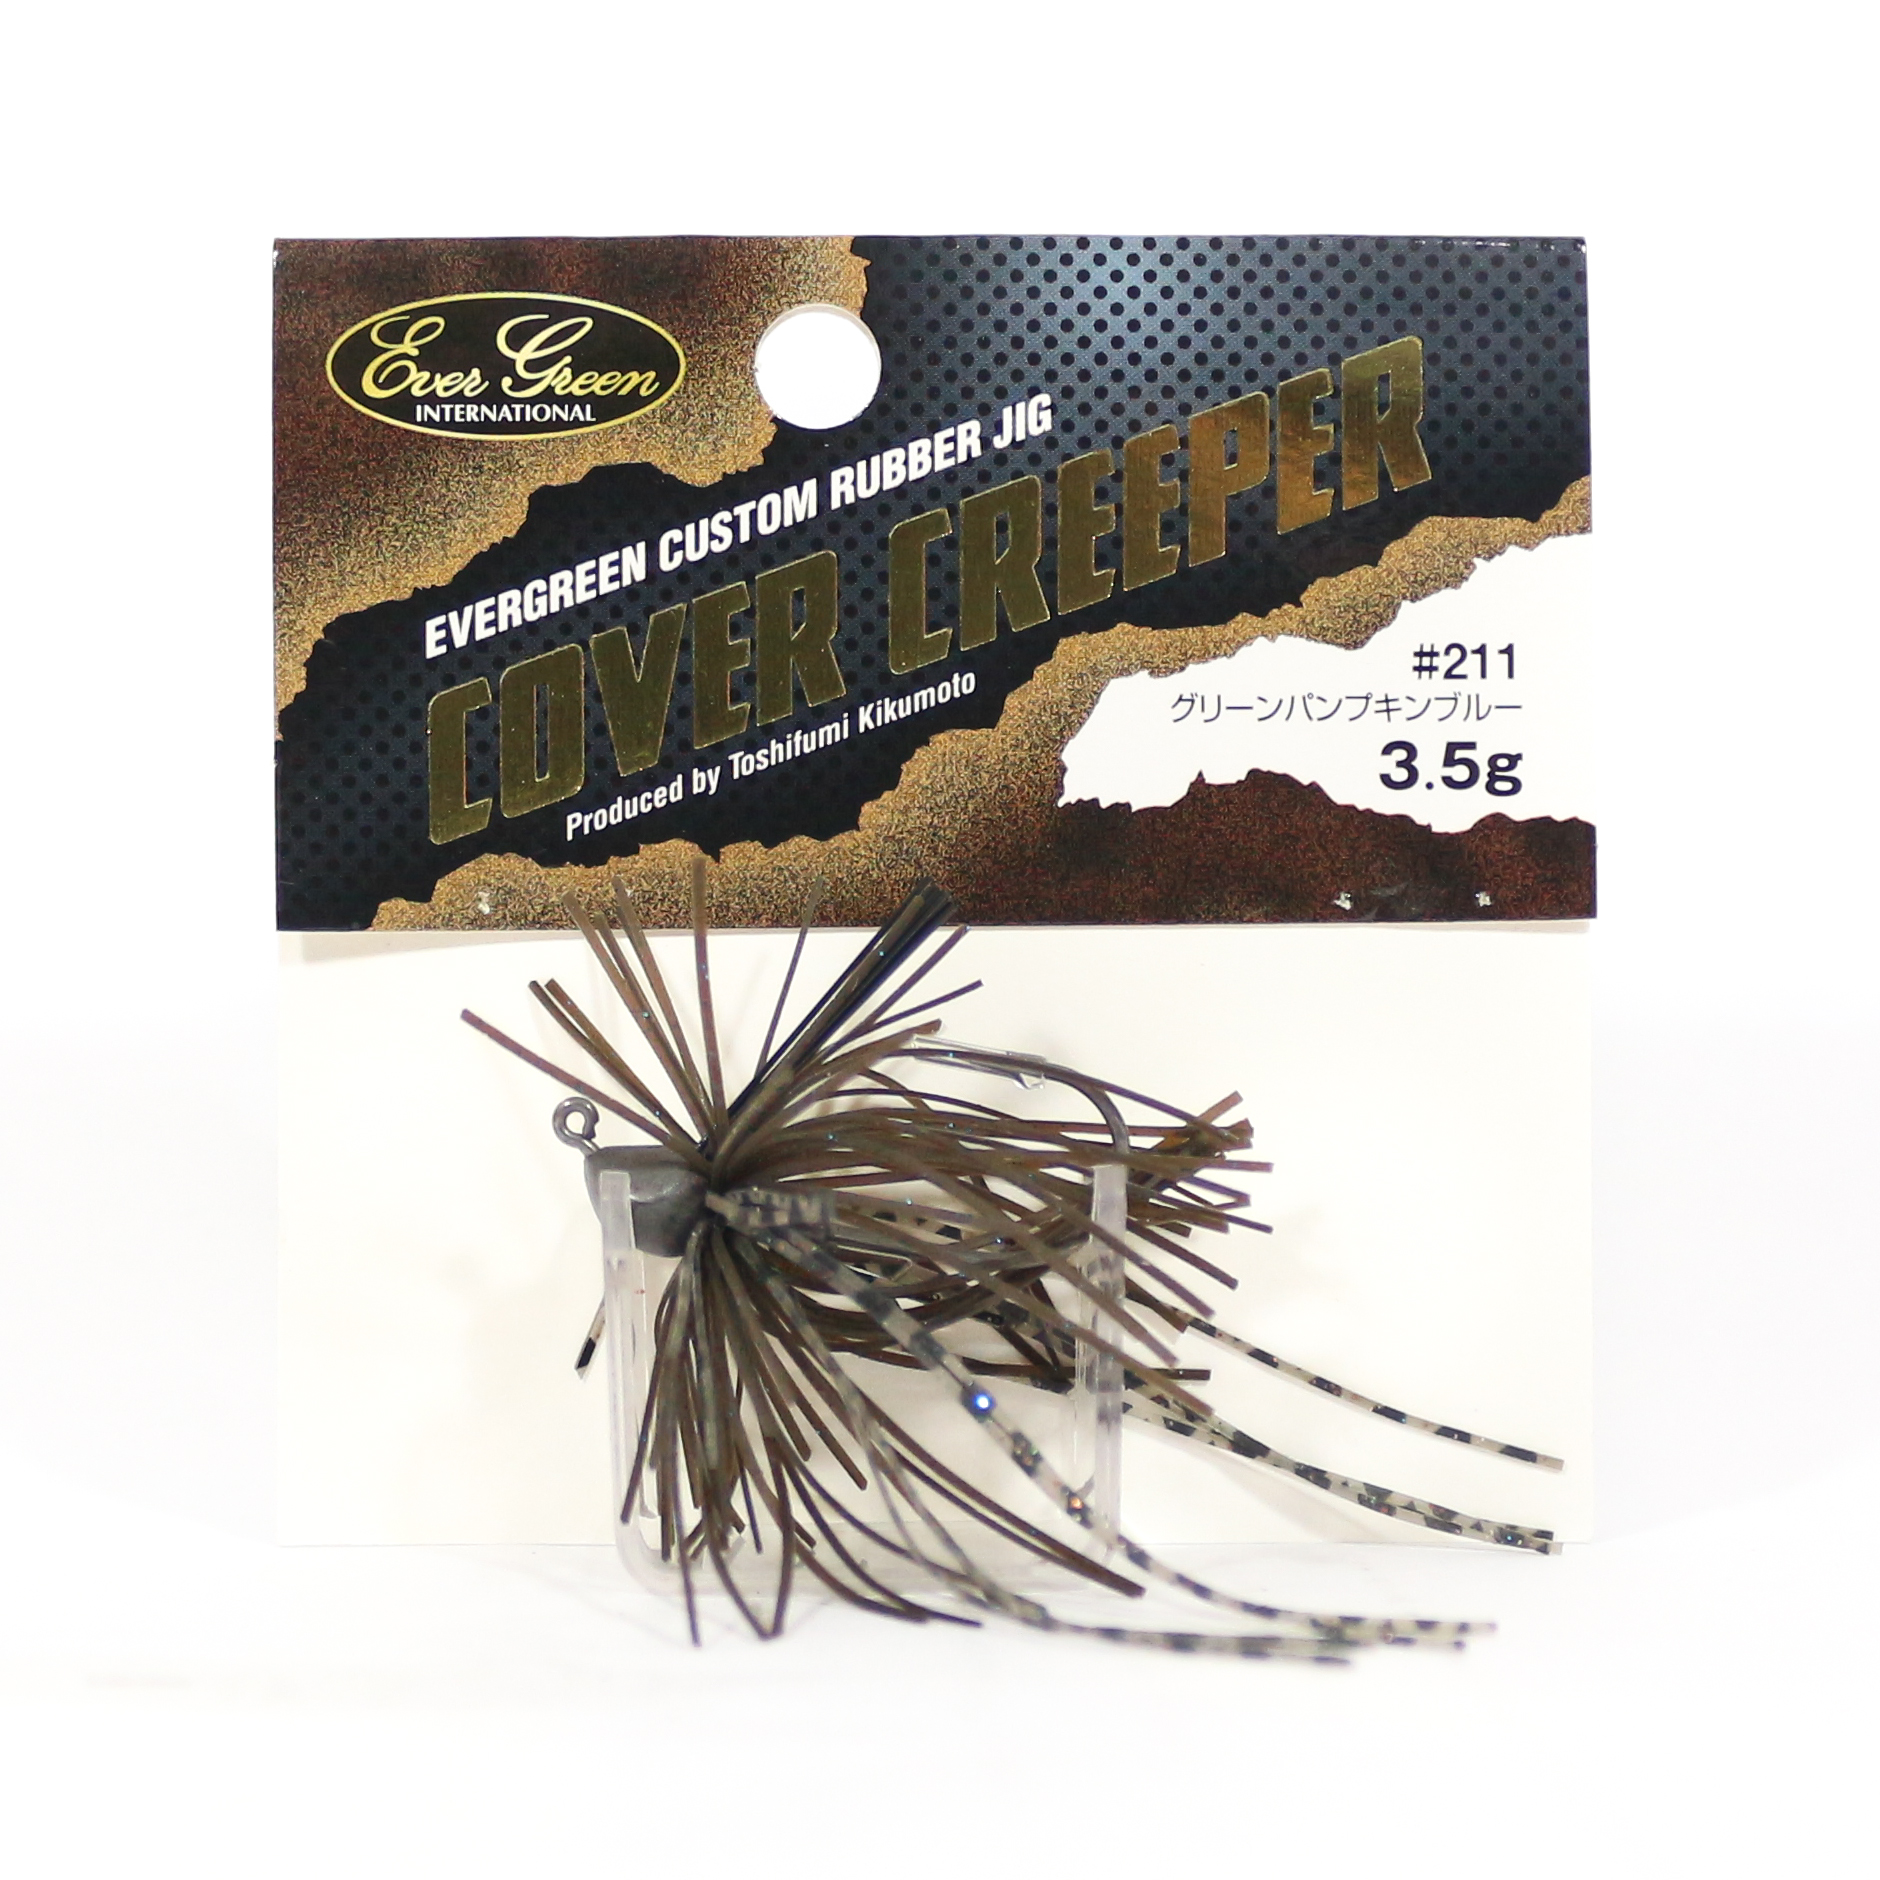 Evergreen Rubber Jig Cover Creeper 3.5g Sinking Lure 211 (3450)